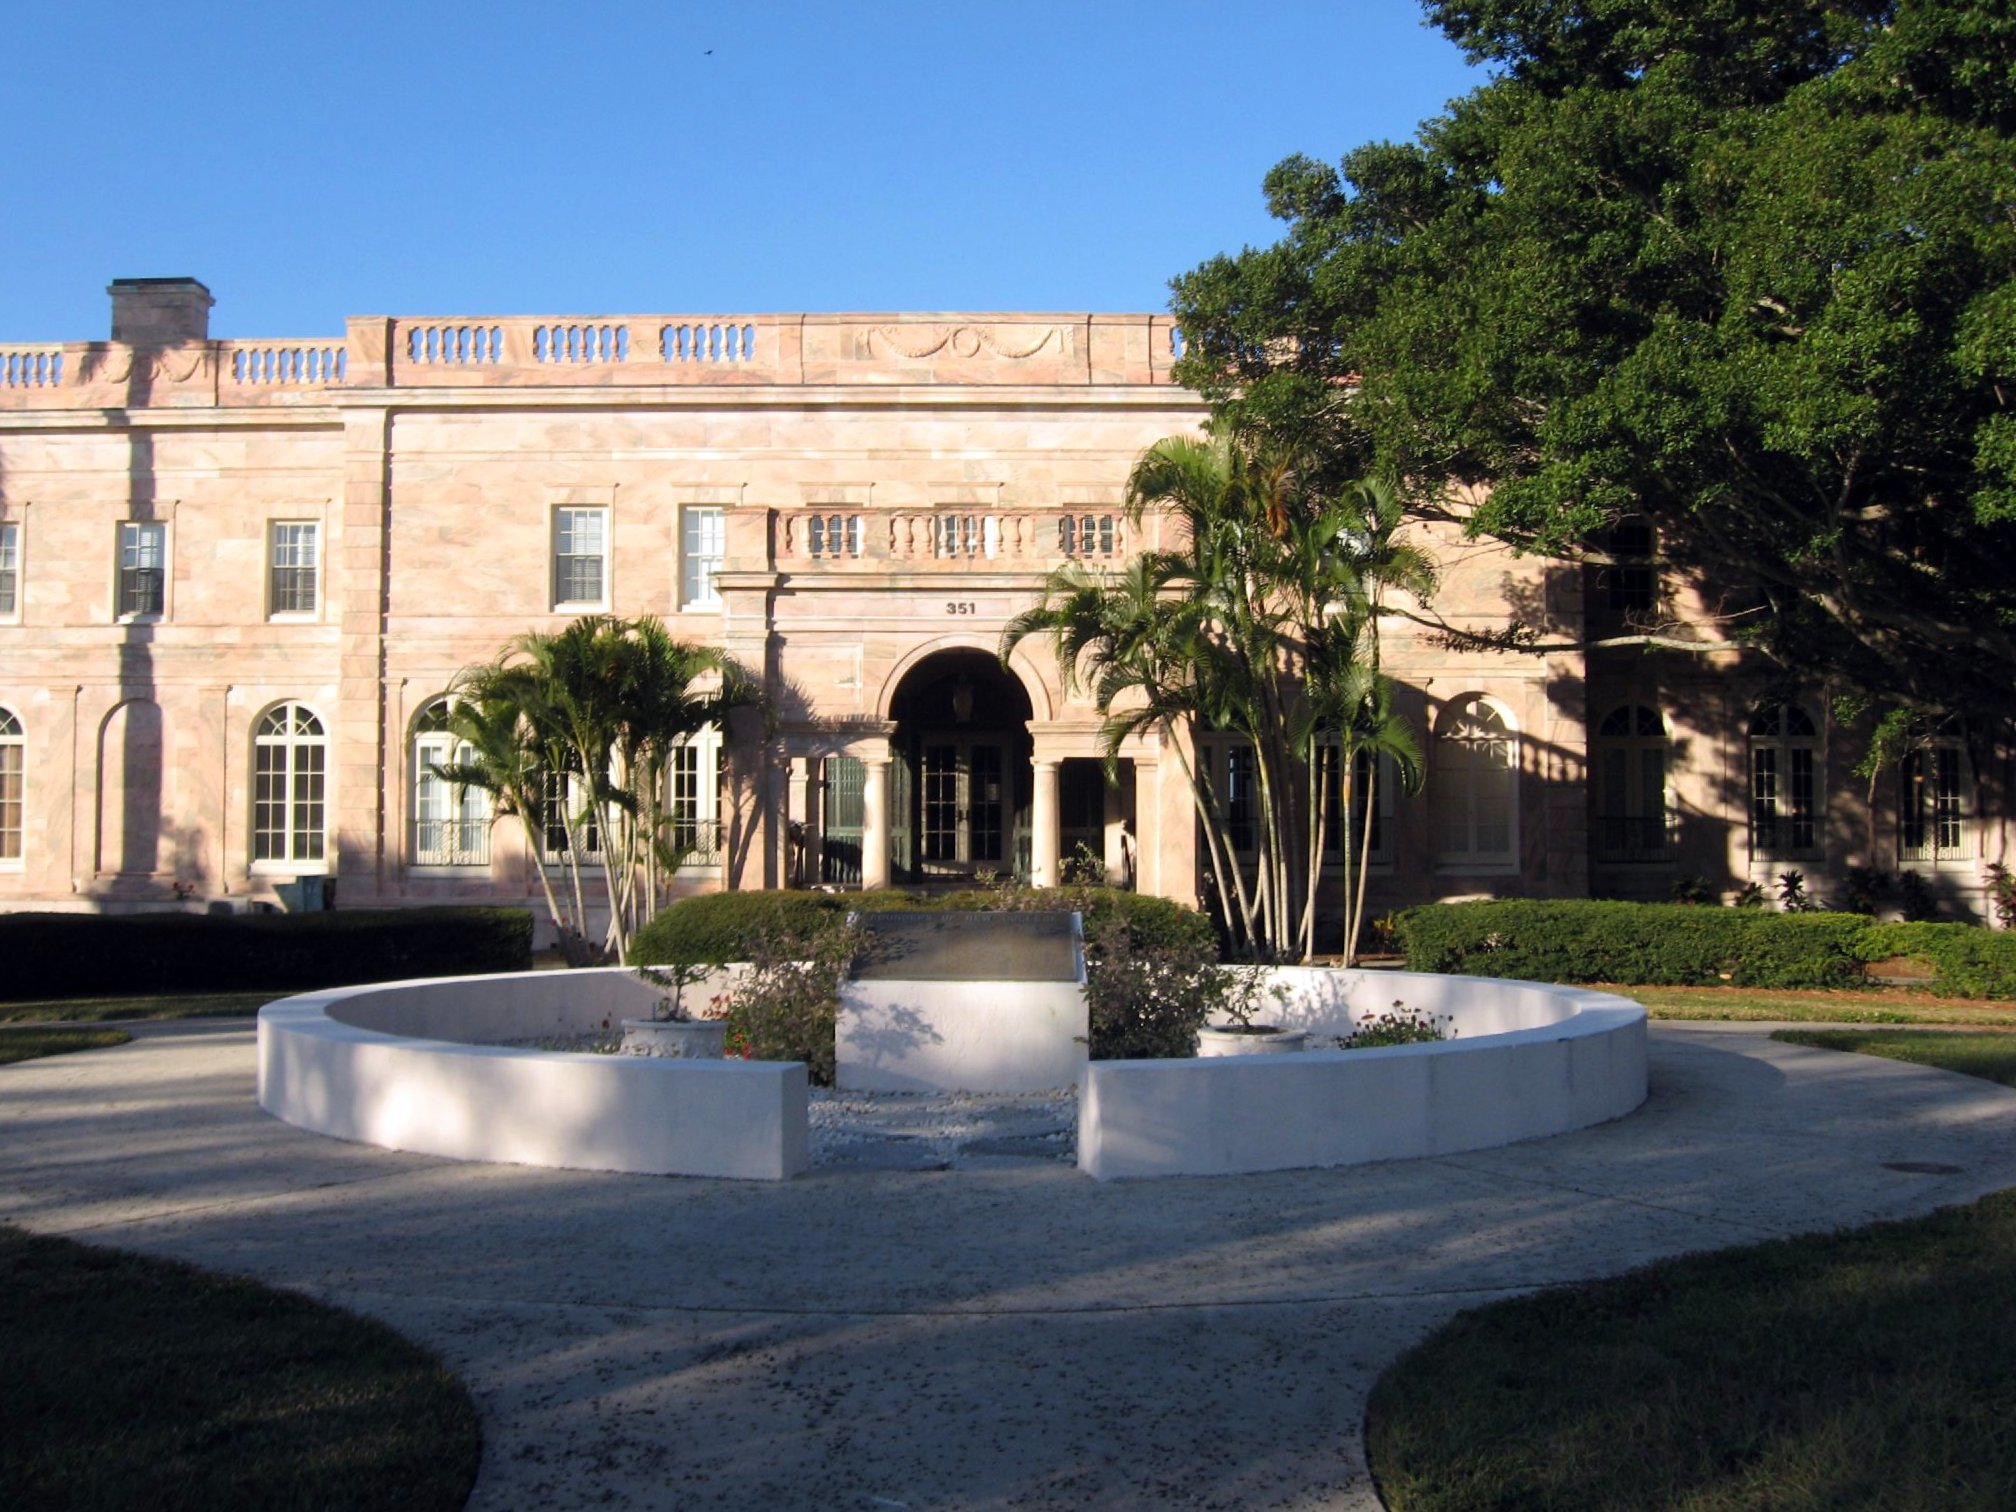 New college of florida admissions office flickr photo - University of florida office of admissions ...